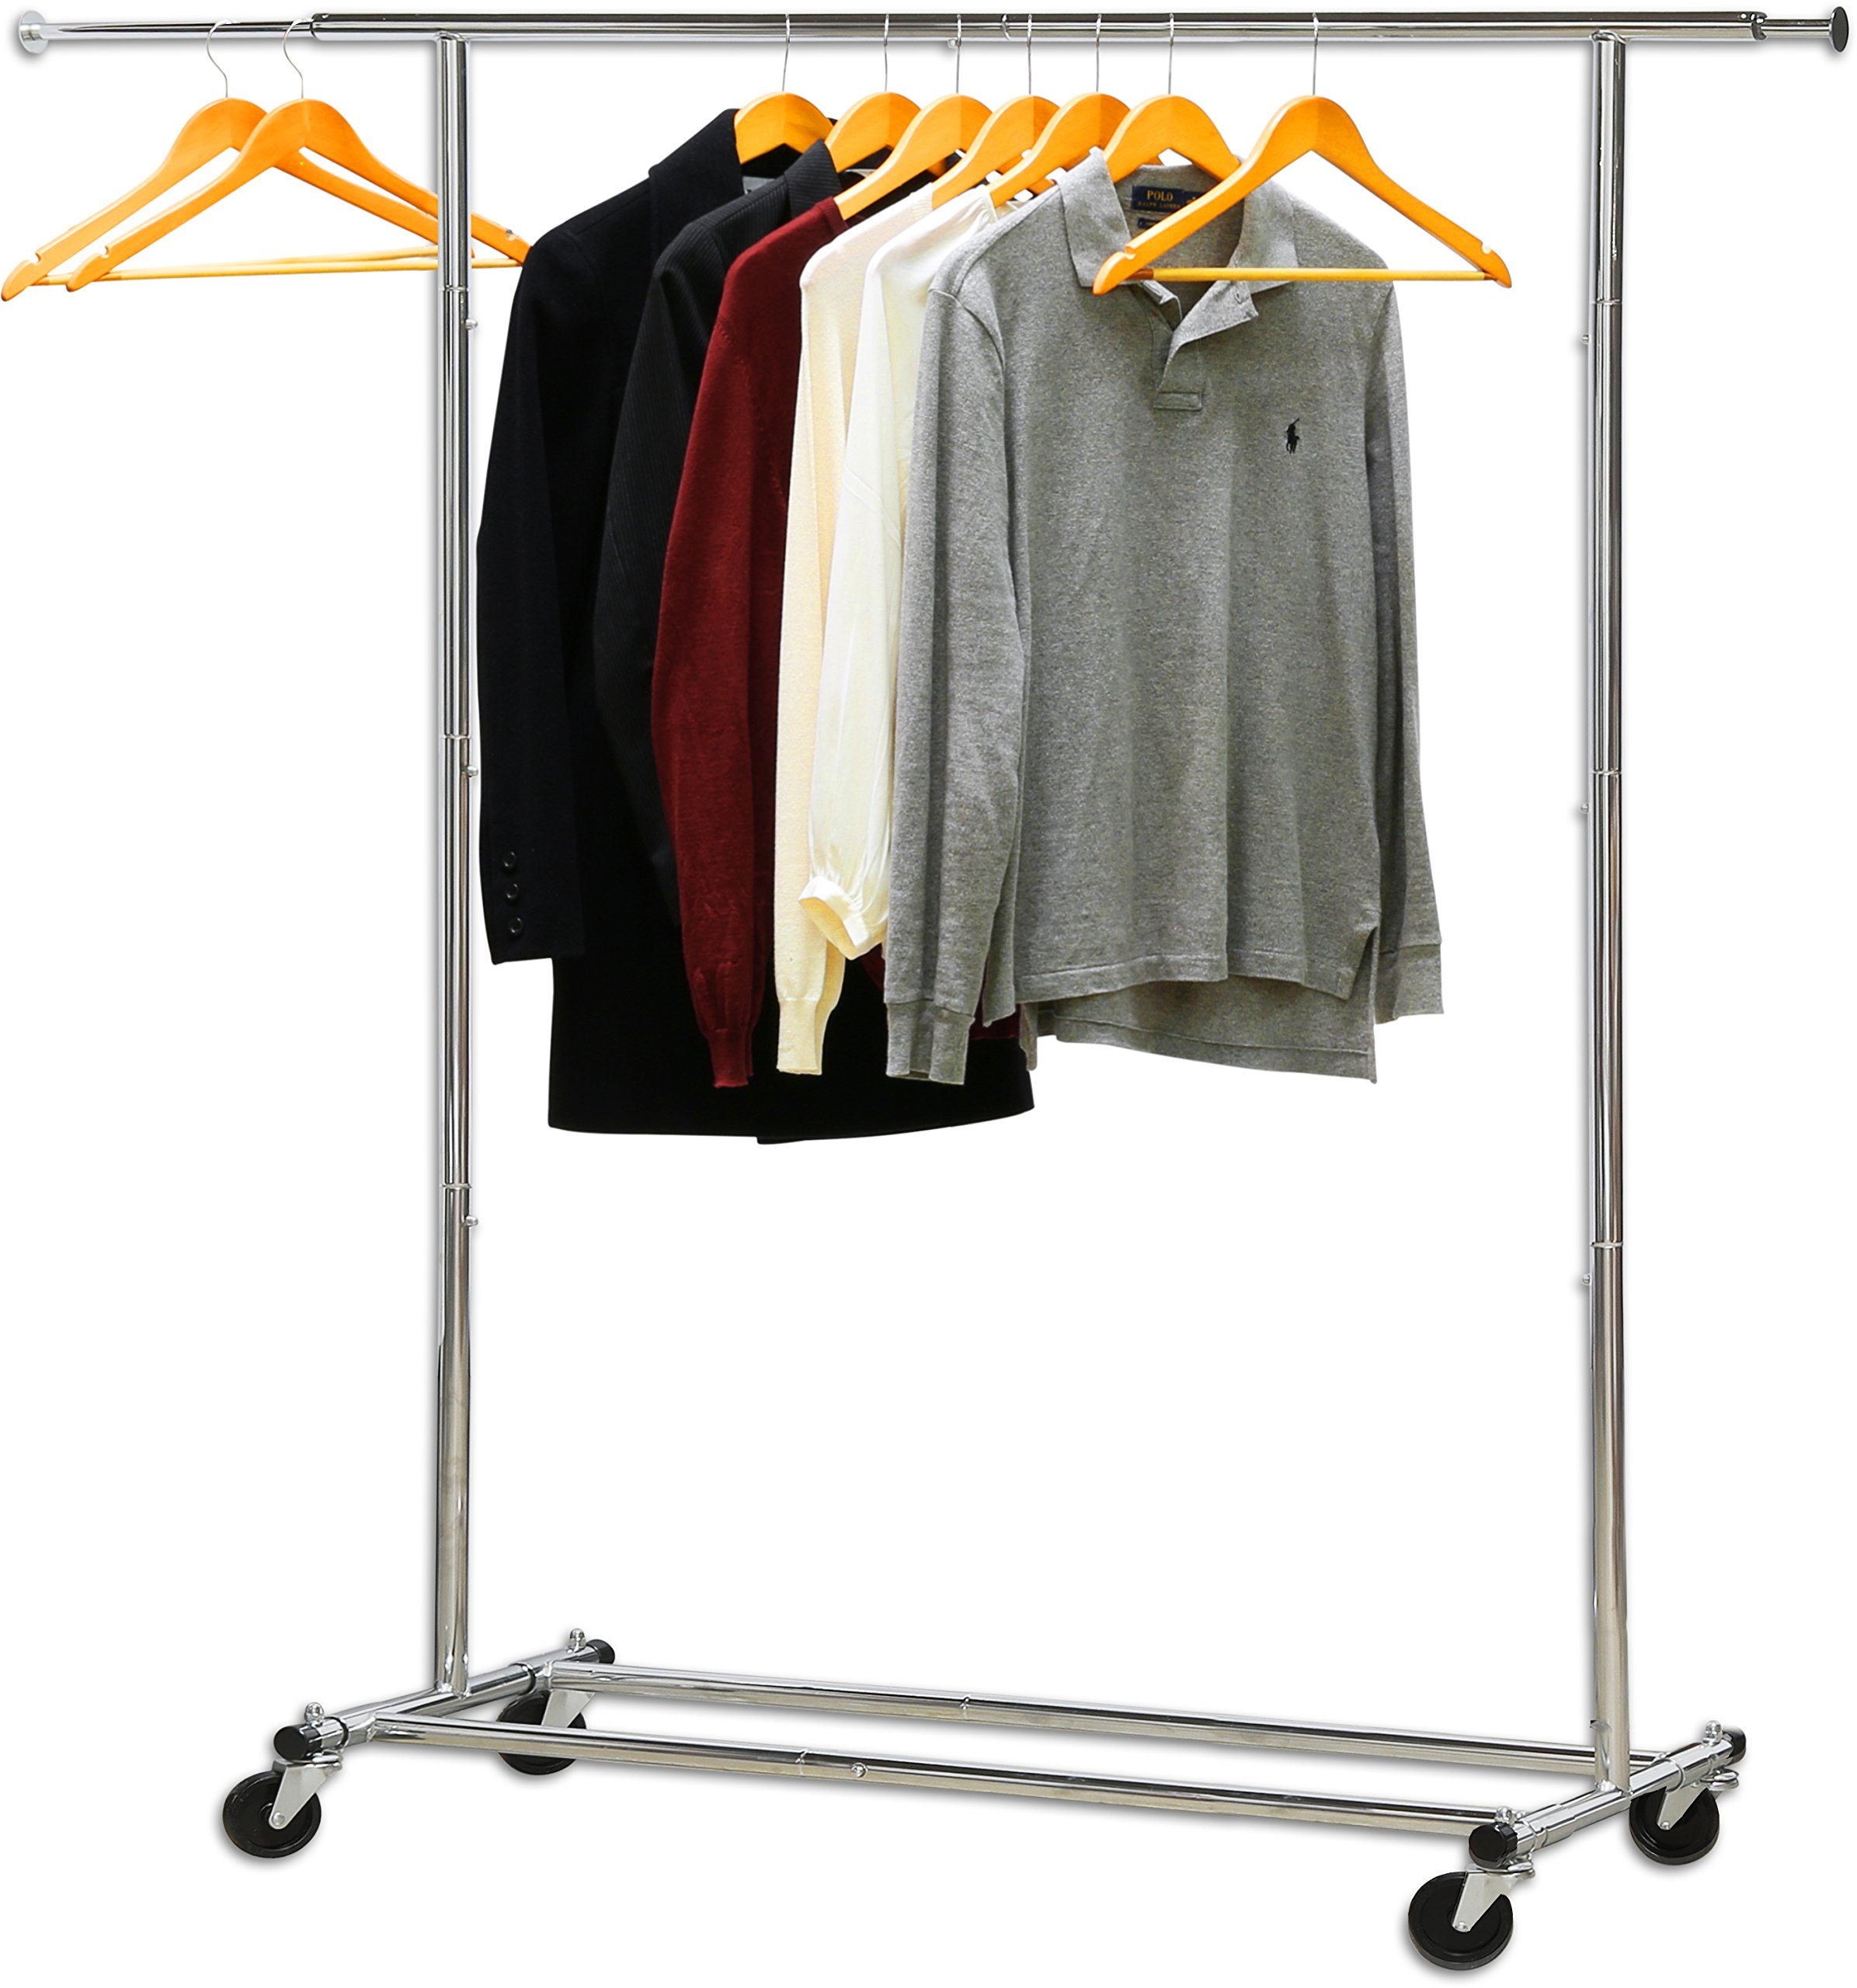 instahanger clothes rack system walmart white com ip hanging